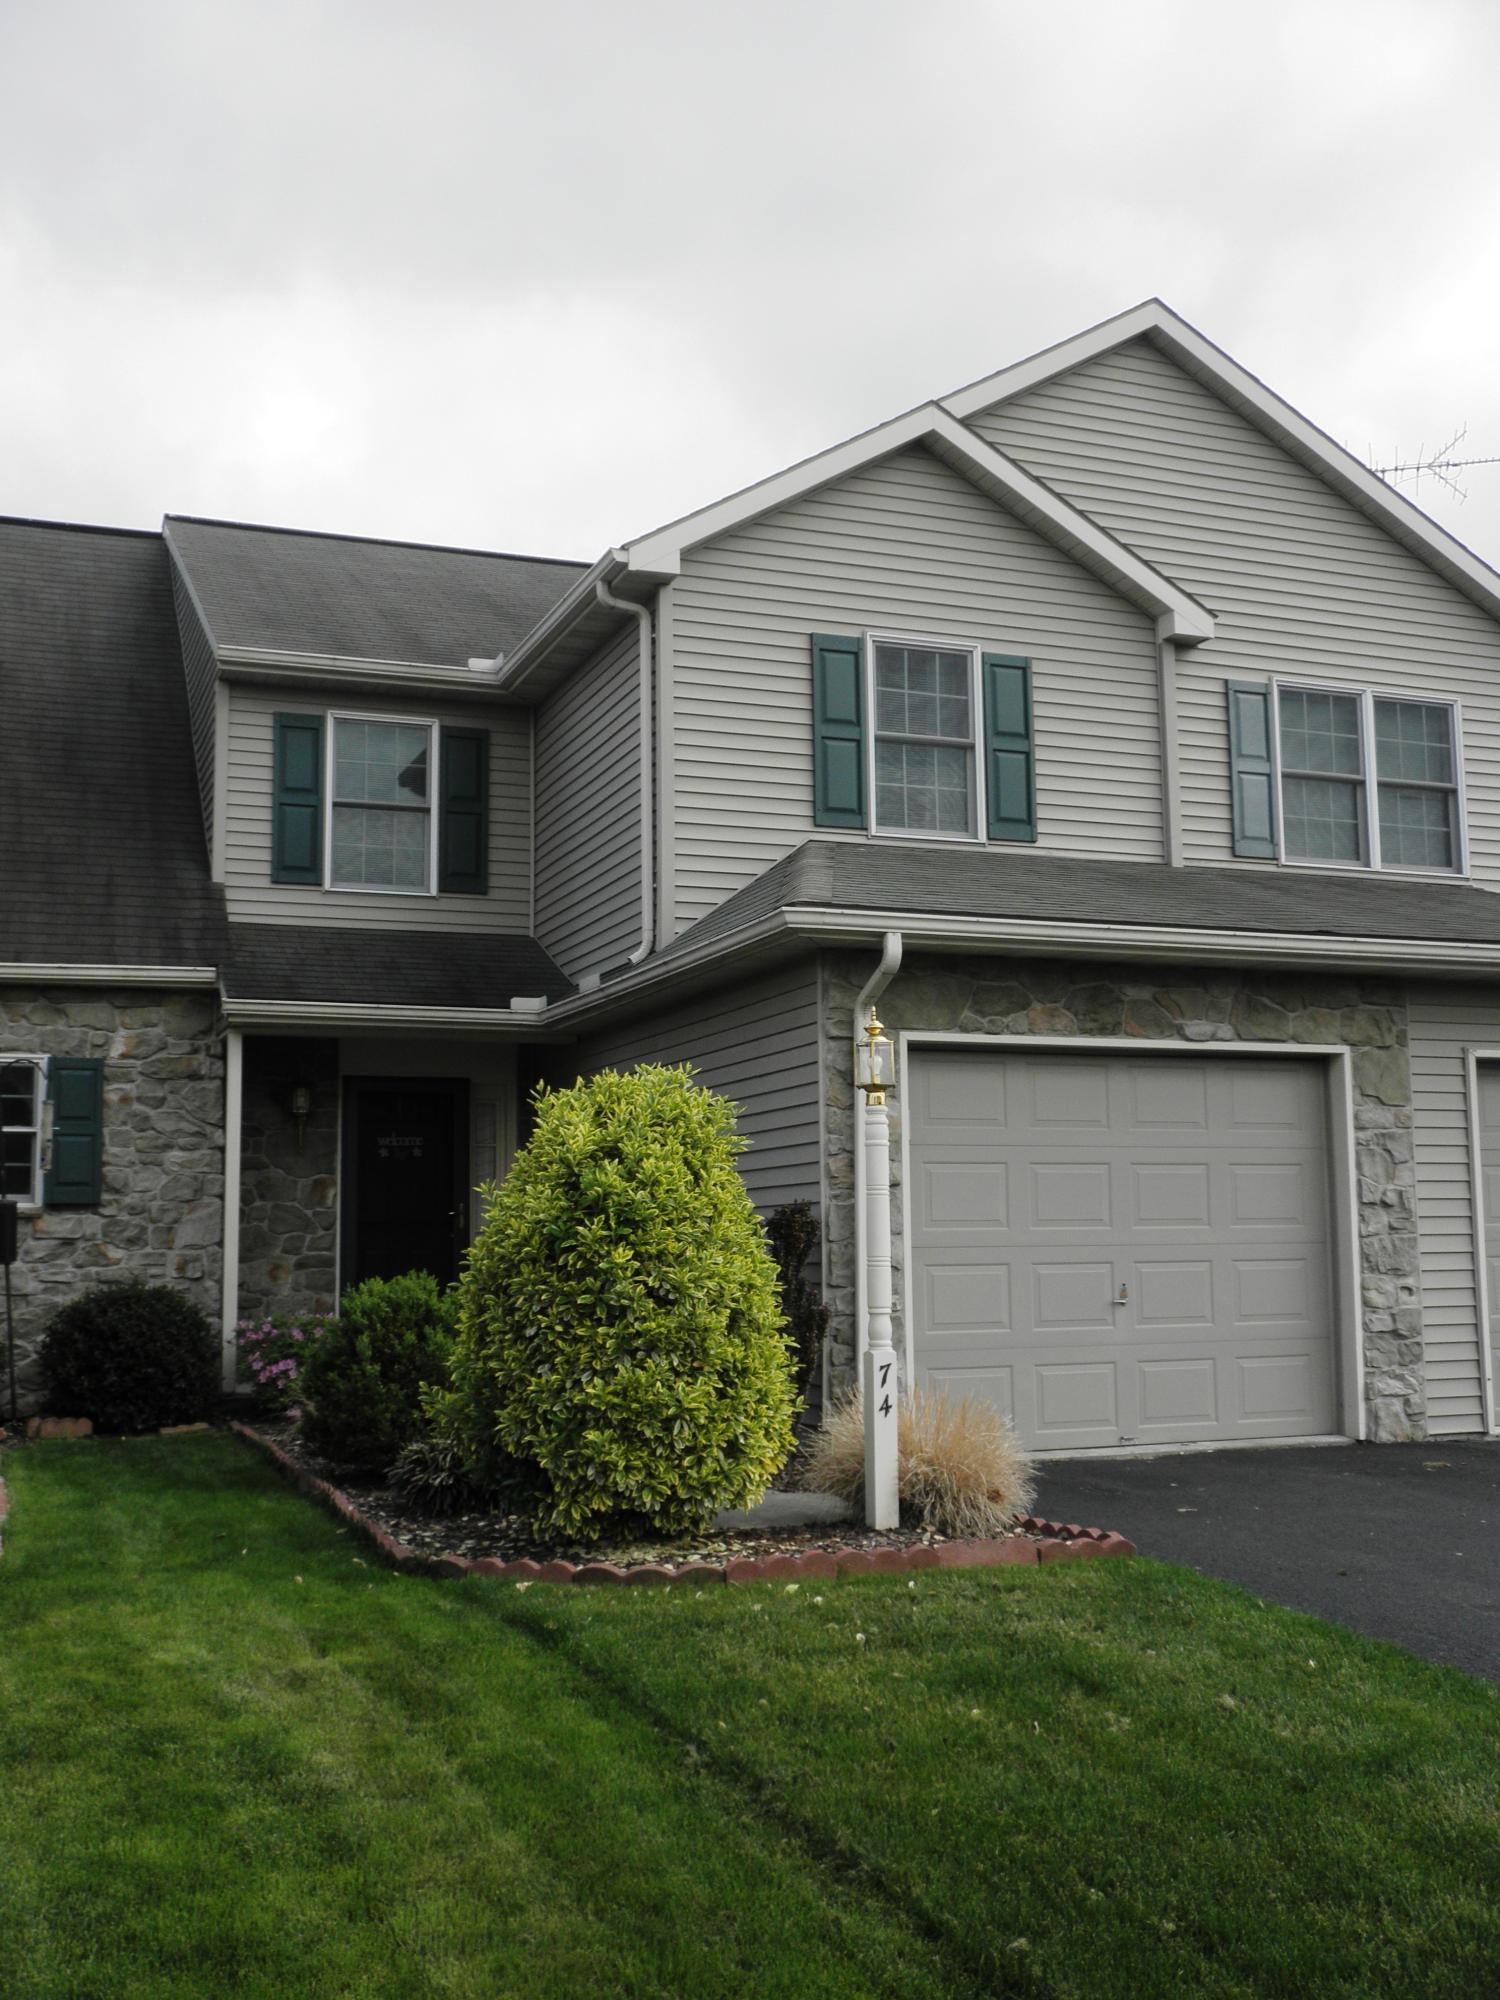 74 Pebble Creek Dr, Lititz, PA 17543